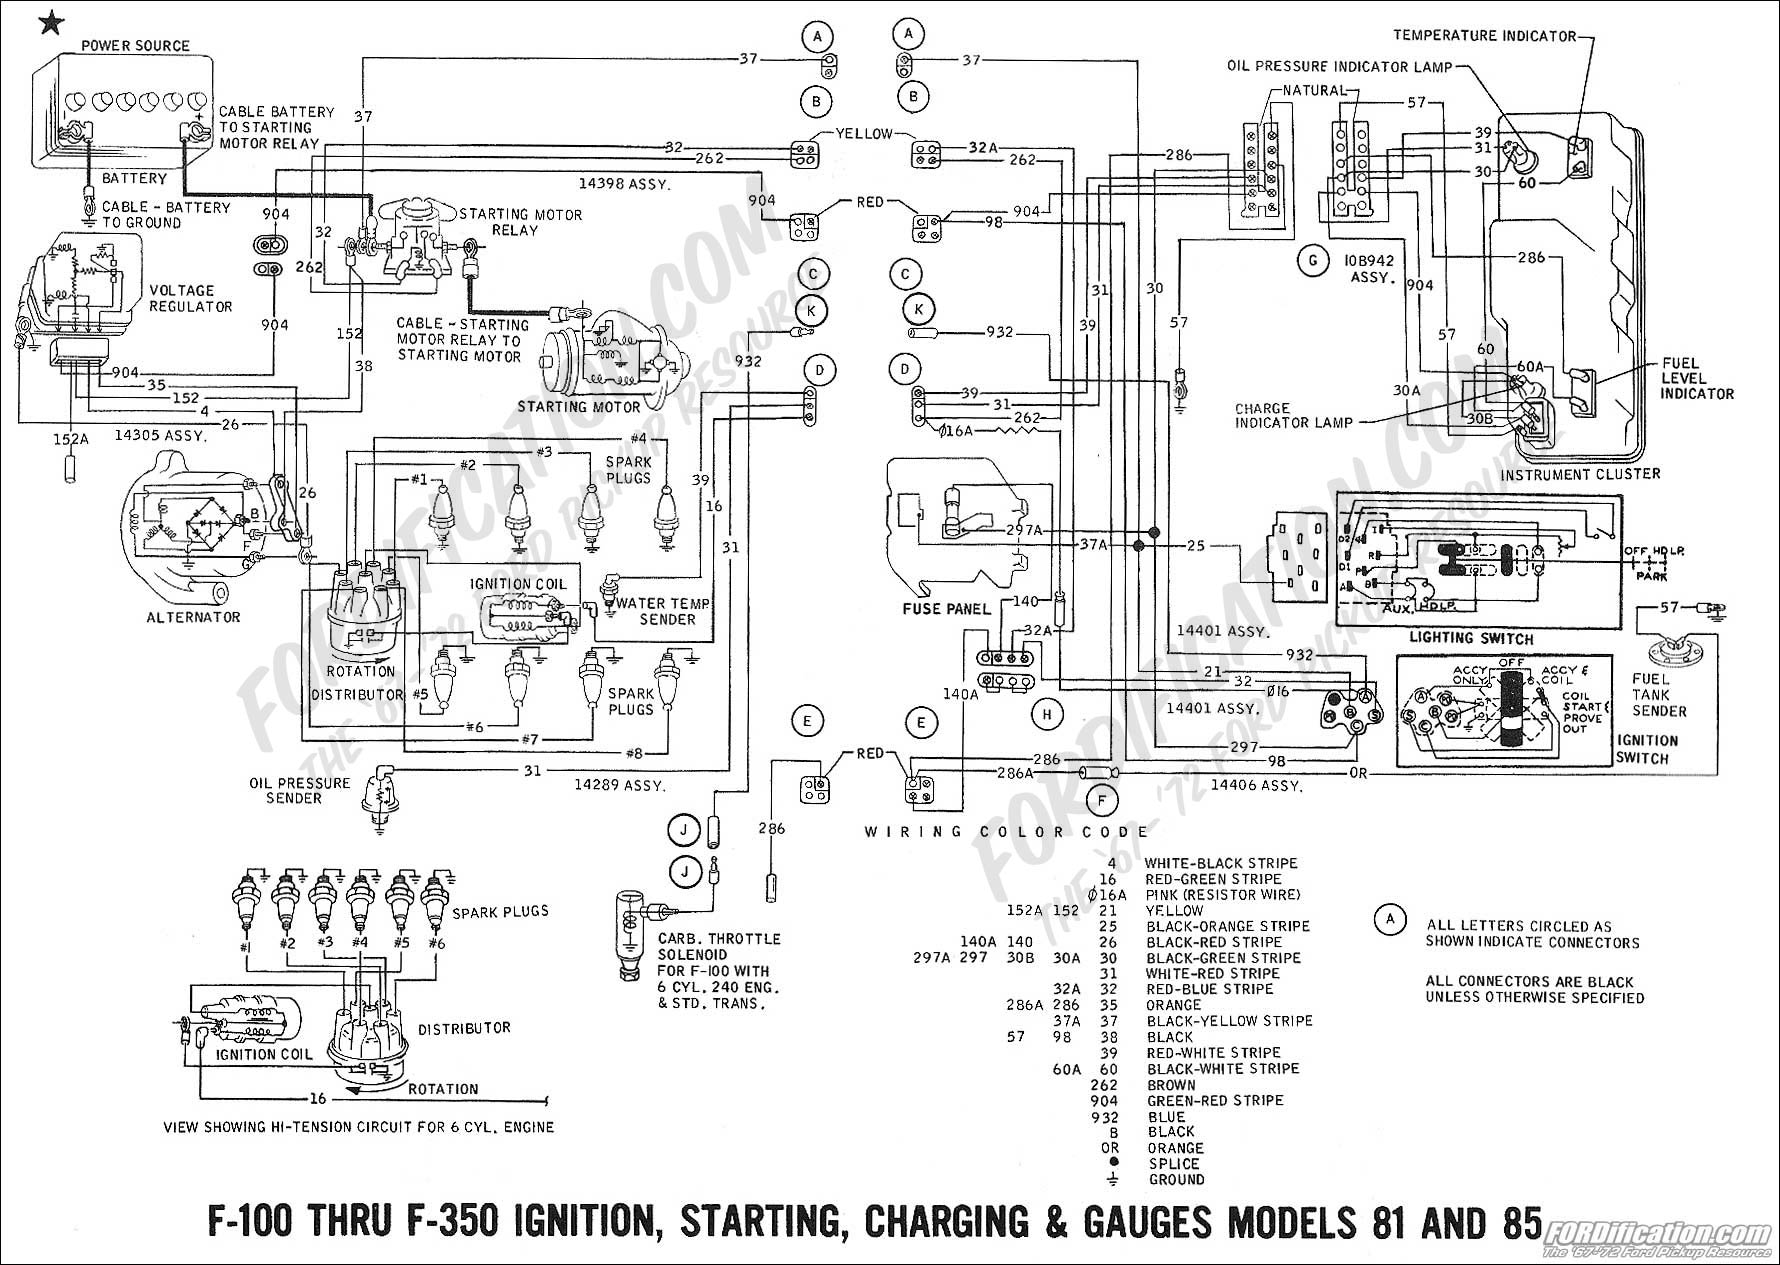 ford truck technical drawings and schematics section h wiring rh fordification com 1966 ford bronco wiring diagram 78 Ford Bronco Wiring Diagram